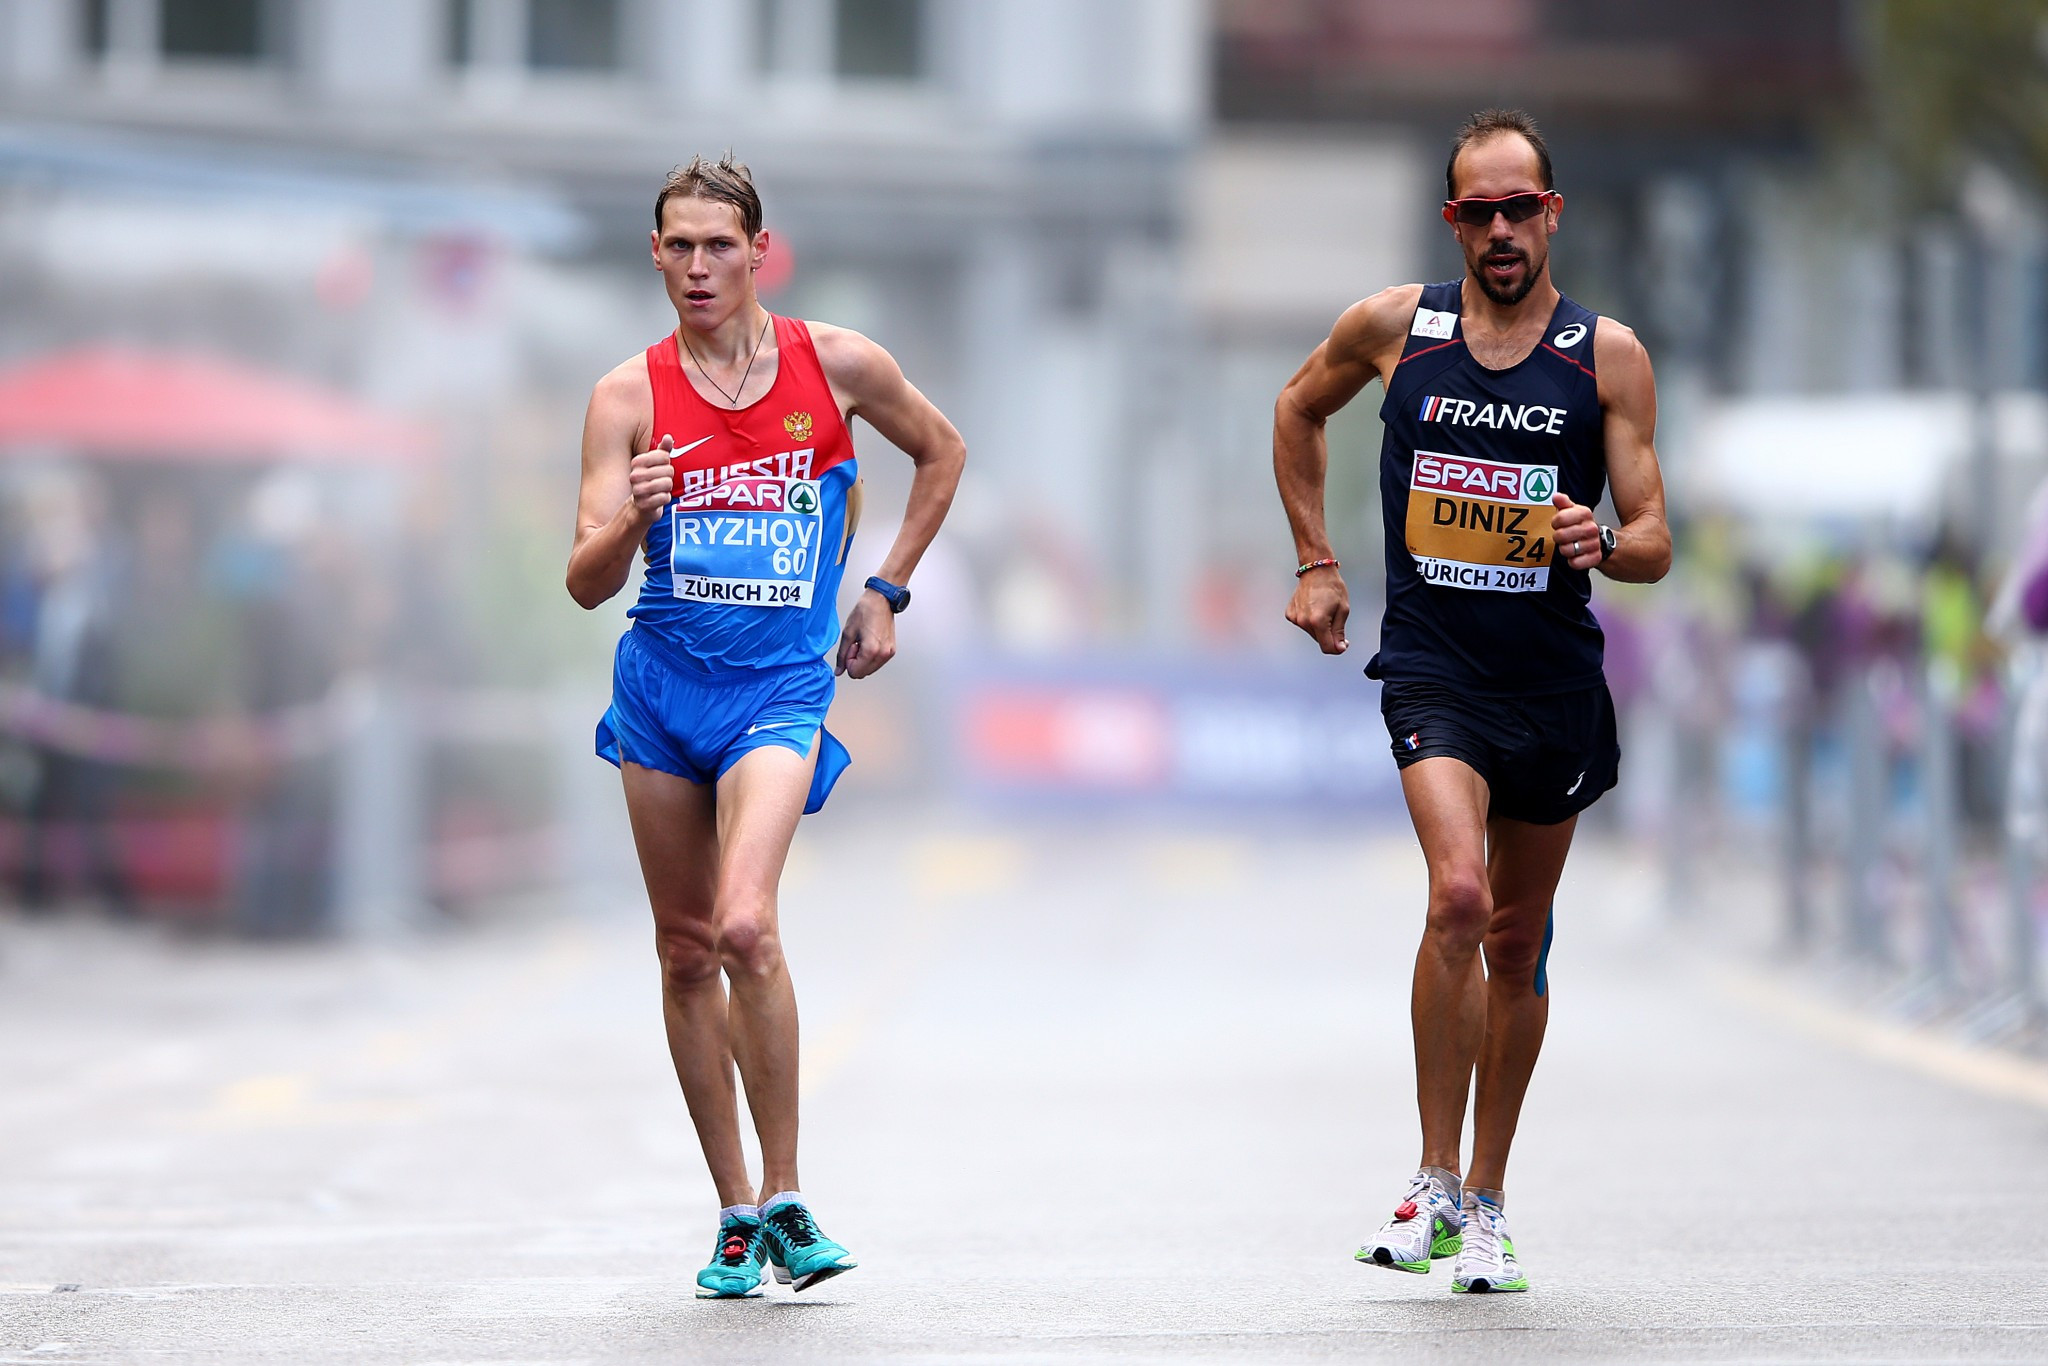 Mikhail Ryzhov, one of six Russian race walkers suspended for four years in June 2015 after testing positive for erythropoietin, is in line to be upgraded to 2011 Universiade gold ©Getty Images